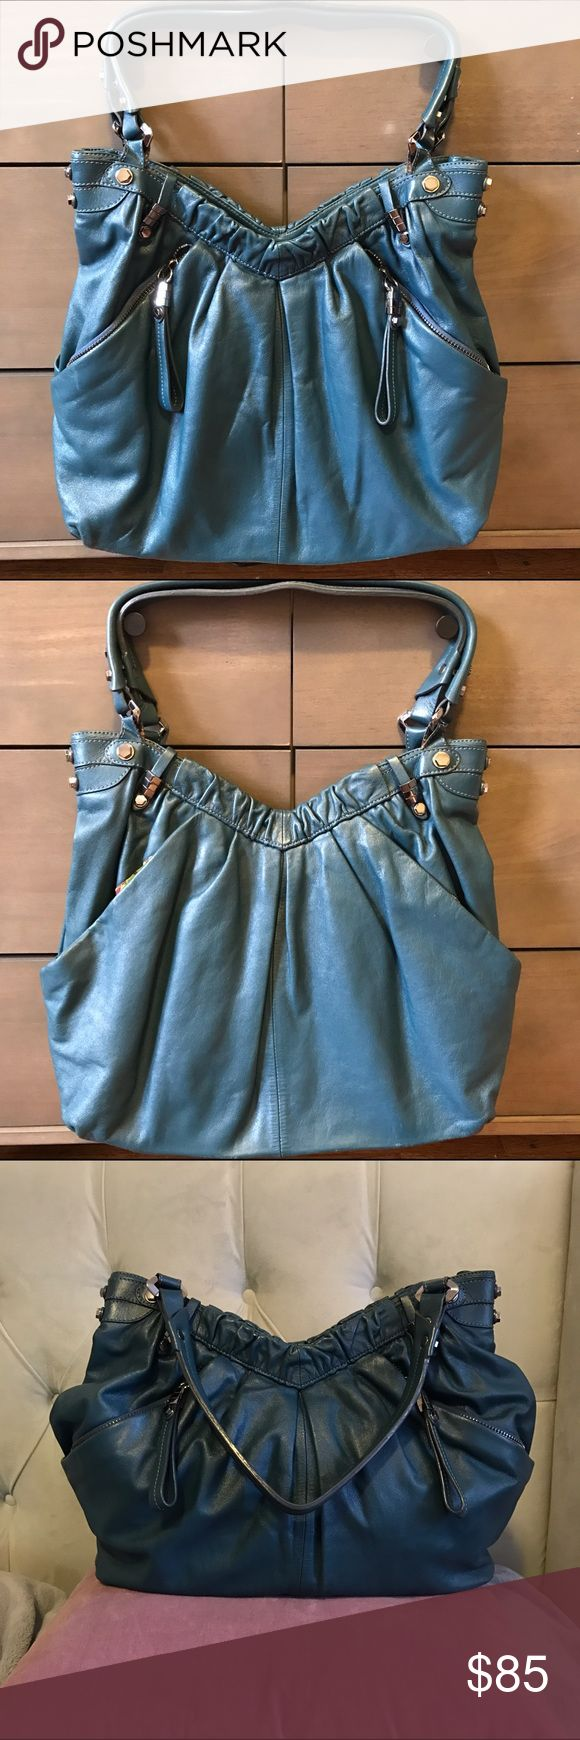 Oryany Teal Leather Bag Like new! Beautiful deep teal color. Nice size, pretty large. Very Slight sign of wear near the bottom. ORYANY Bags Hobos